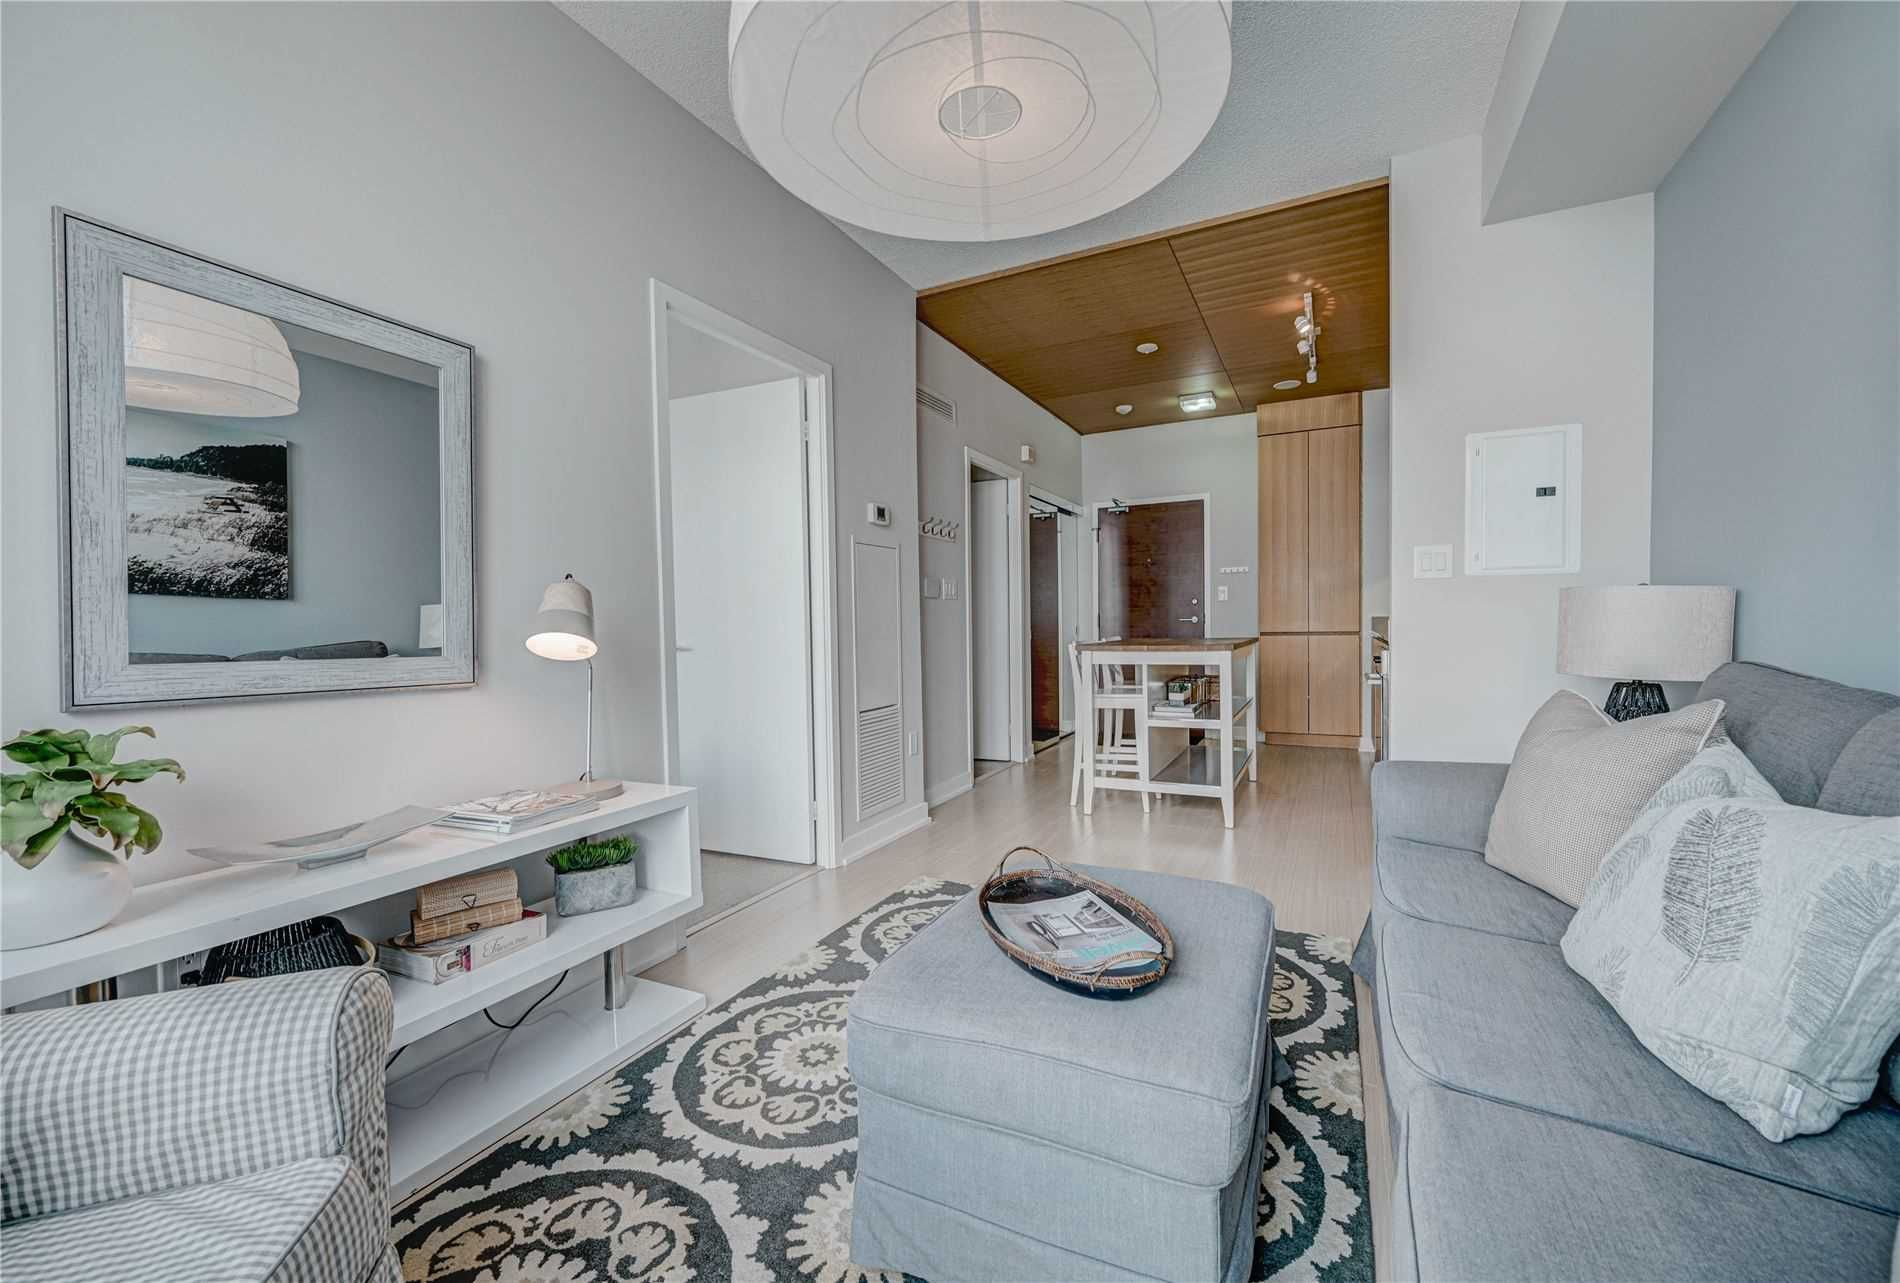 15 Iceboat Terr, unit 4003 for sale in Toronto - image #2